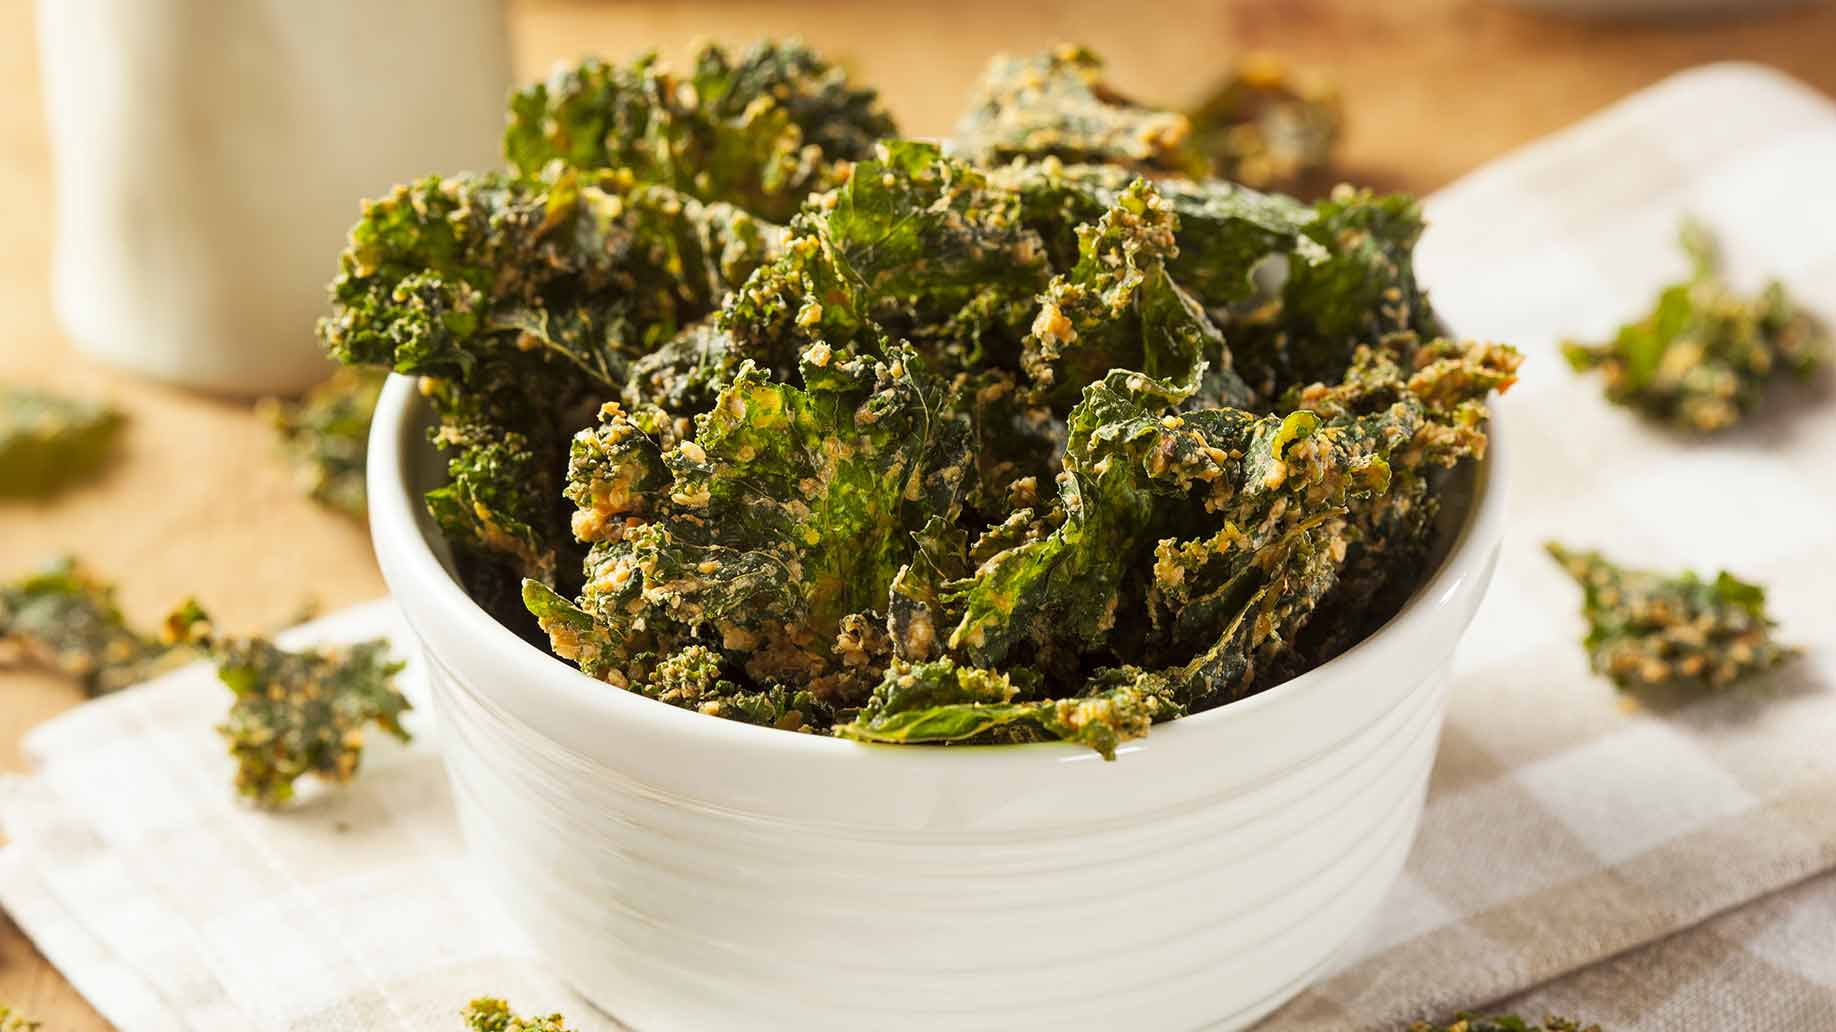 roasted kale chips salt pepper vegan cheese turmeric healthy snack ideas